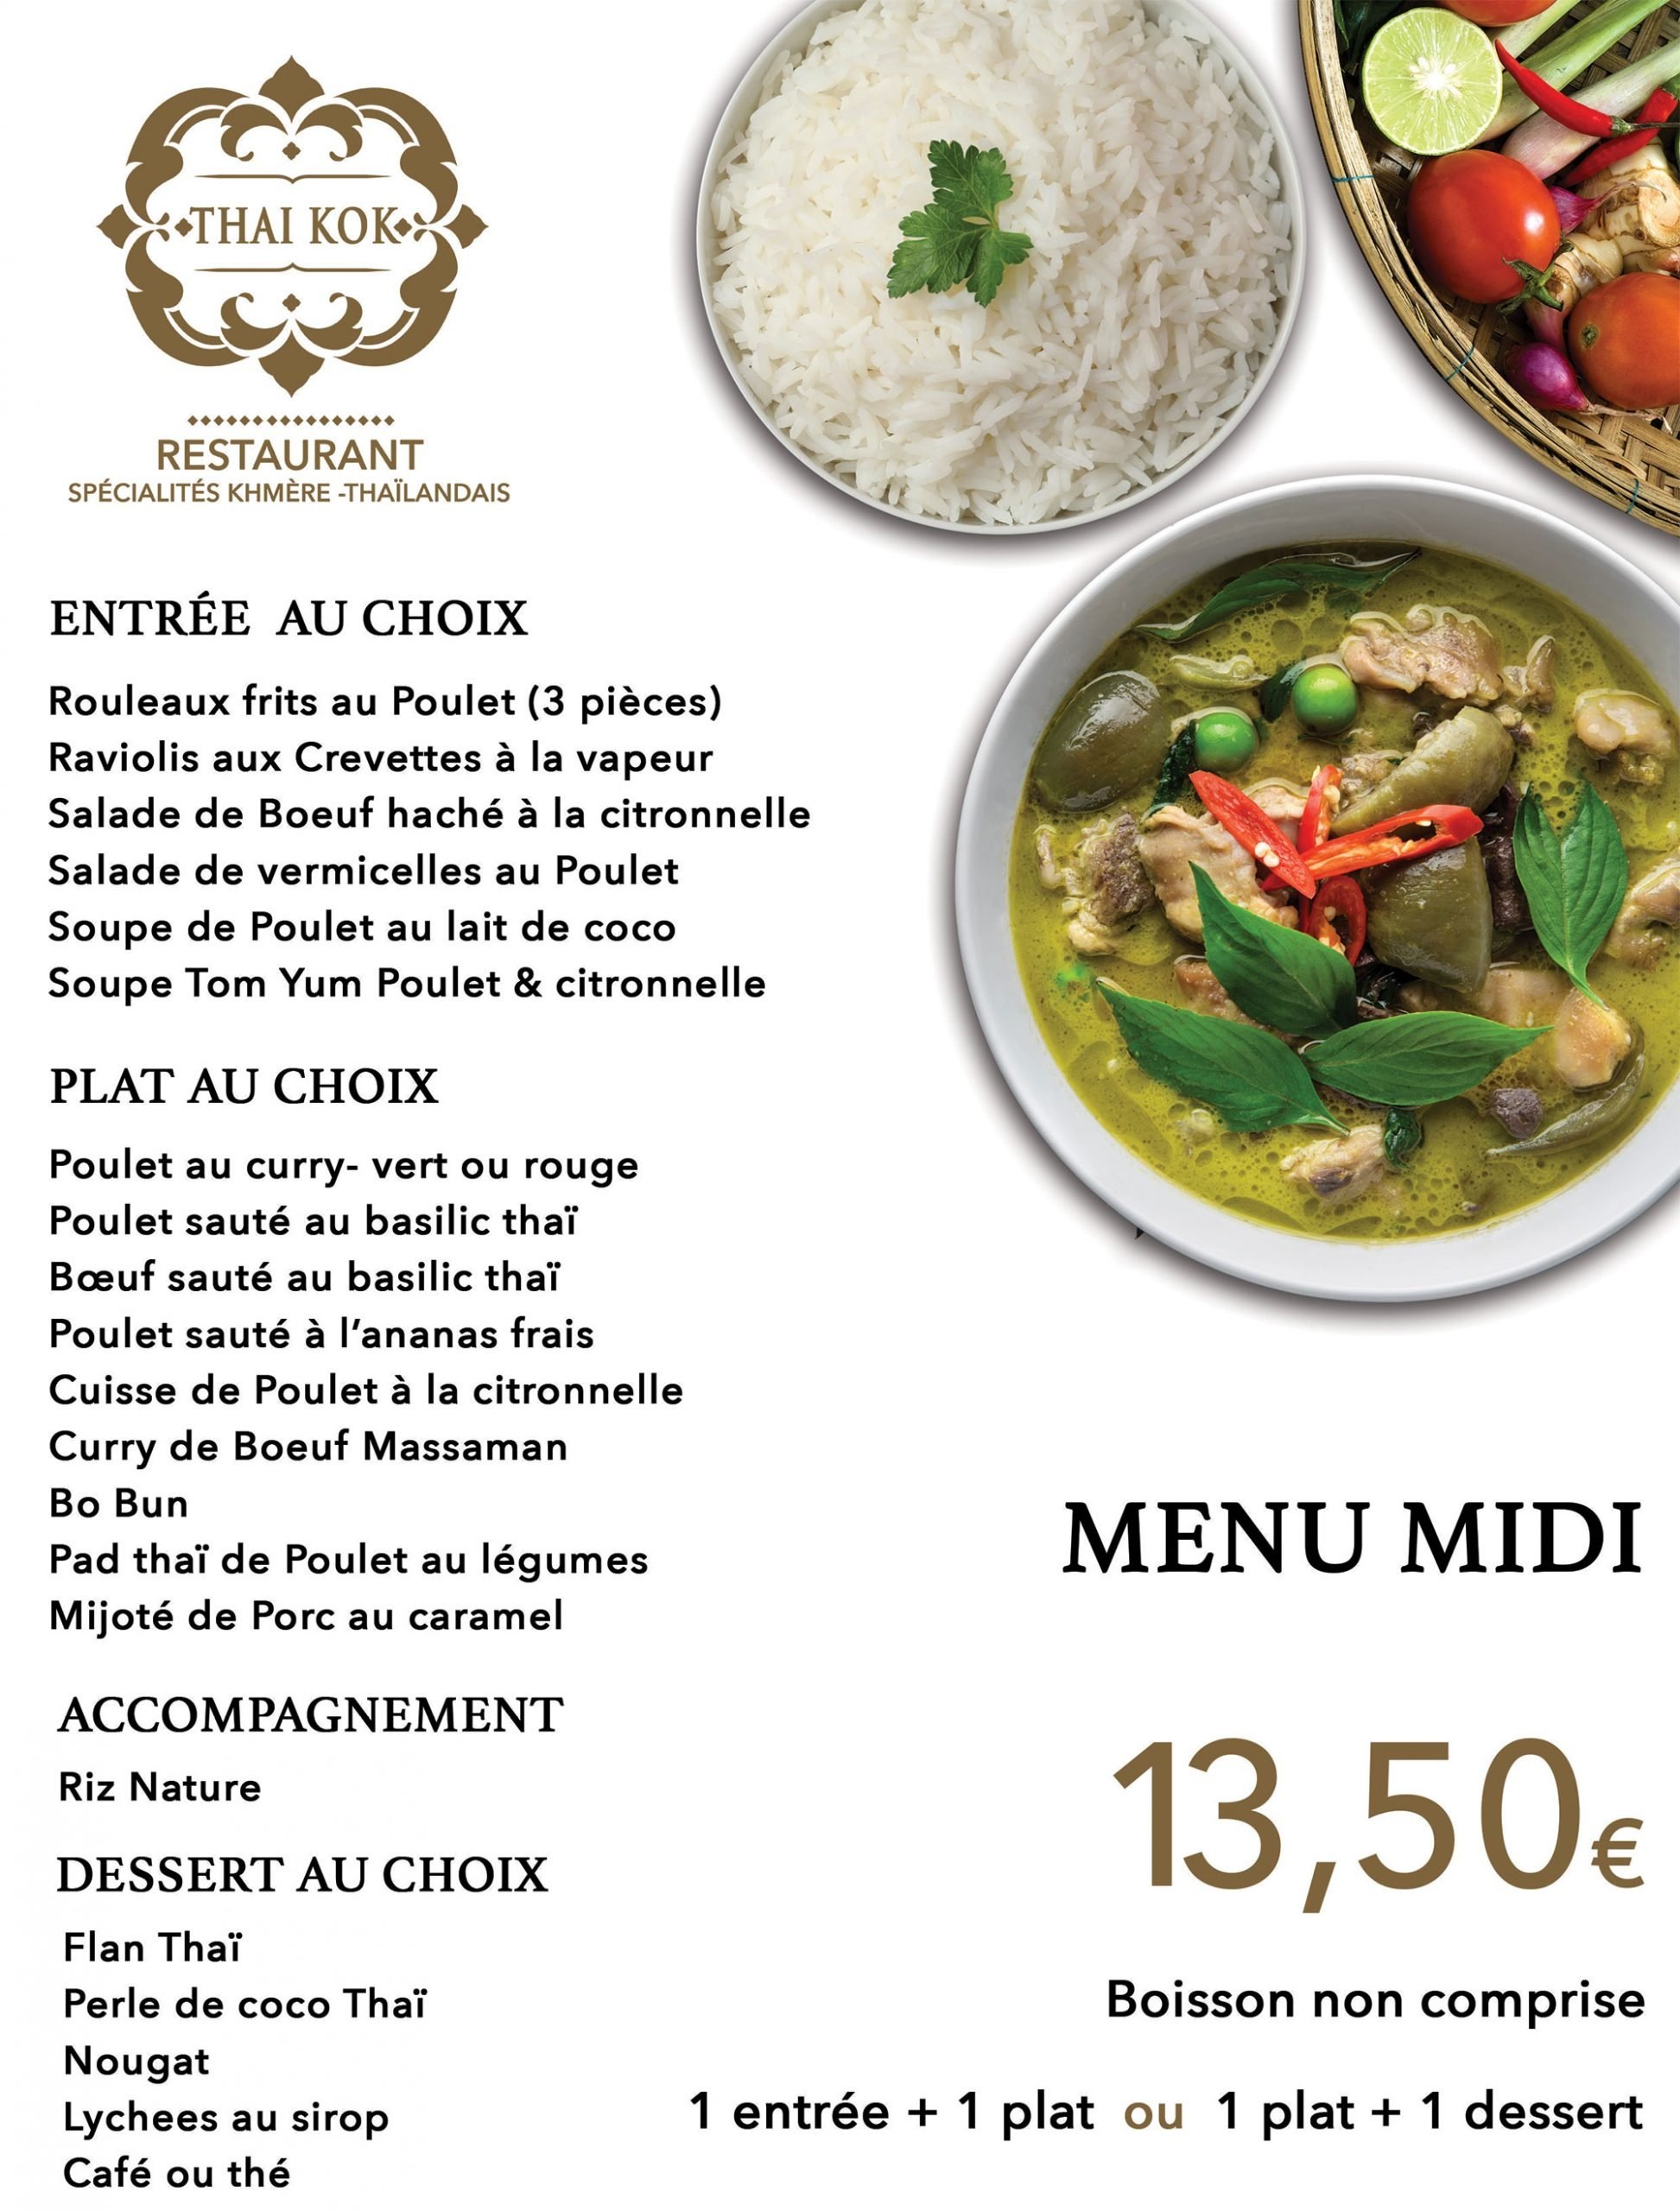 Thai-kok-menu-midi-13.50-final